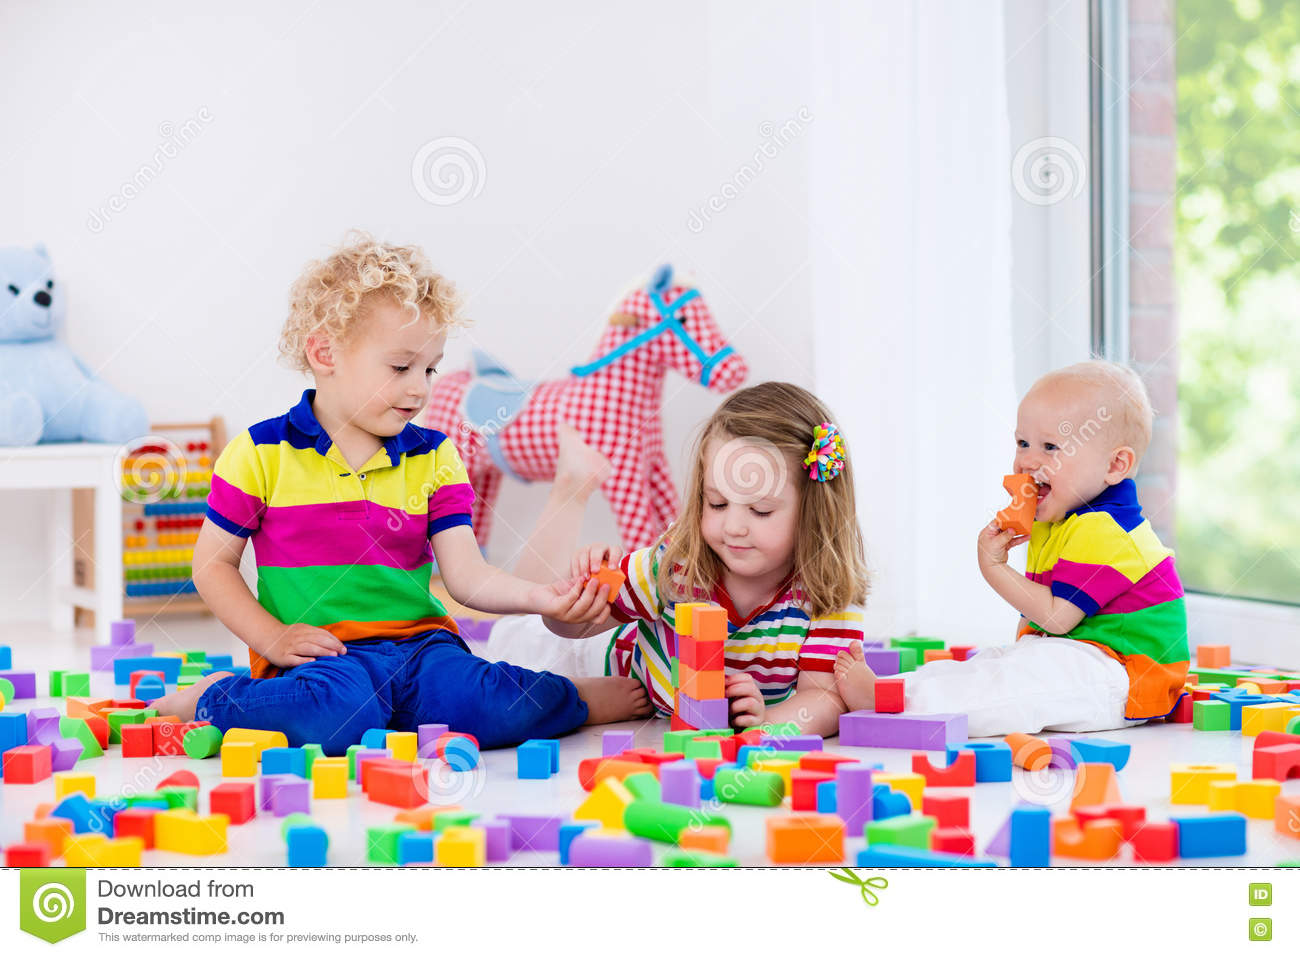 Kids Playing With Colorful Toy Blocks Stock Photo Image Of Mess